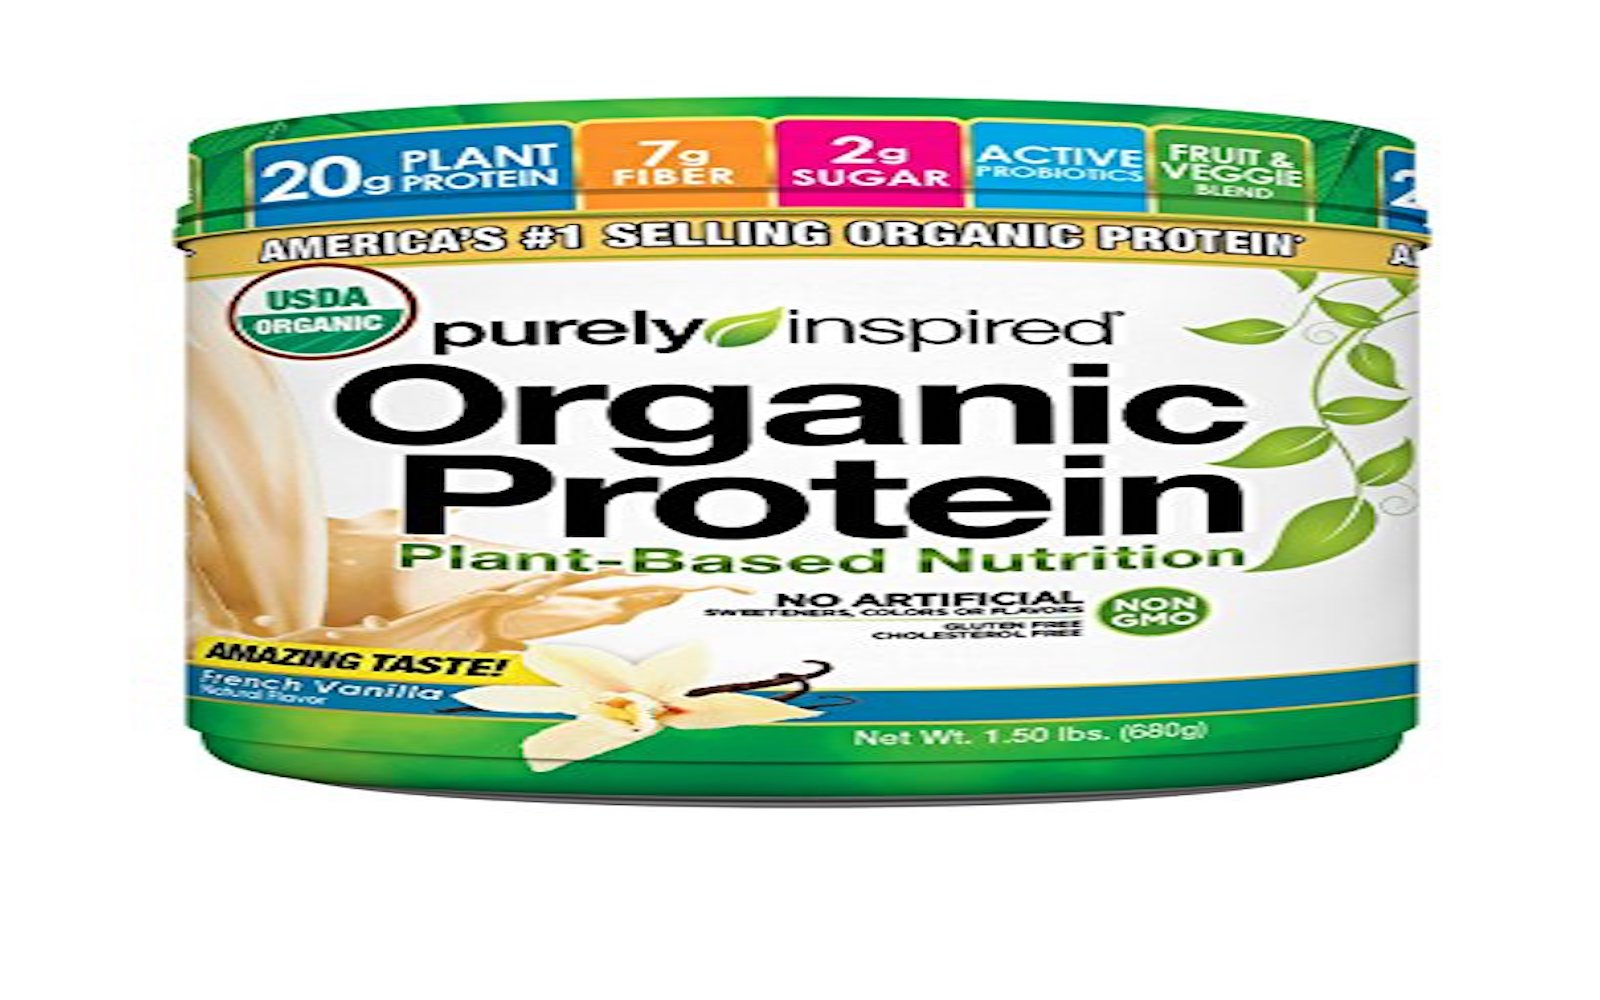 purely inspired organic protein vegan powder